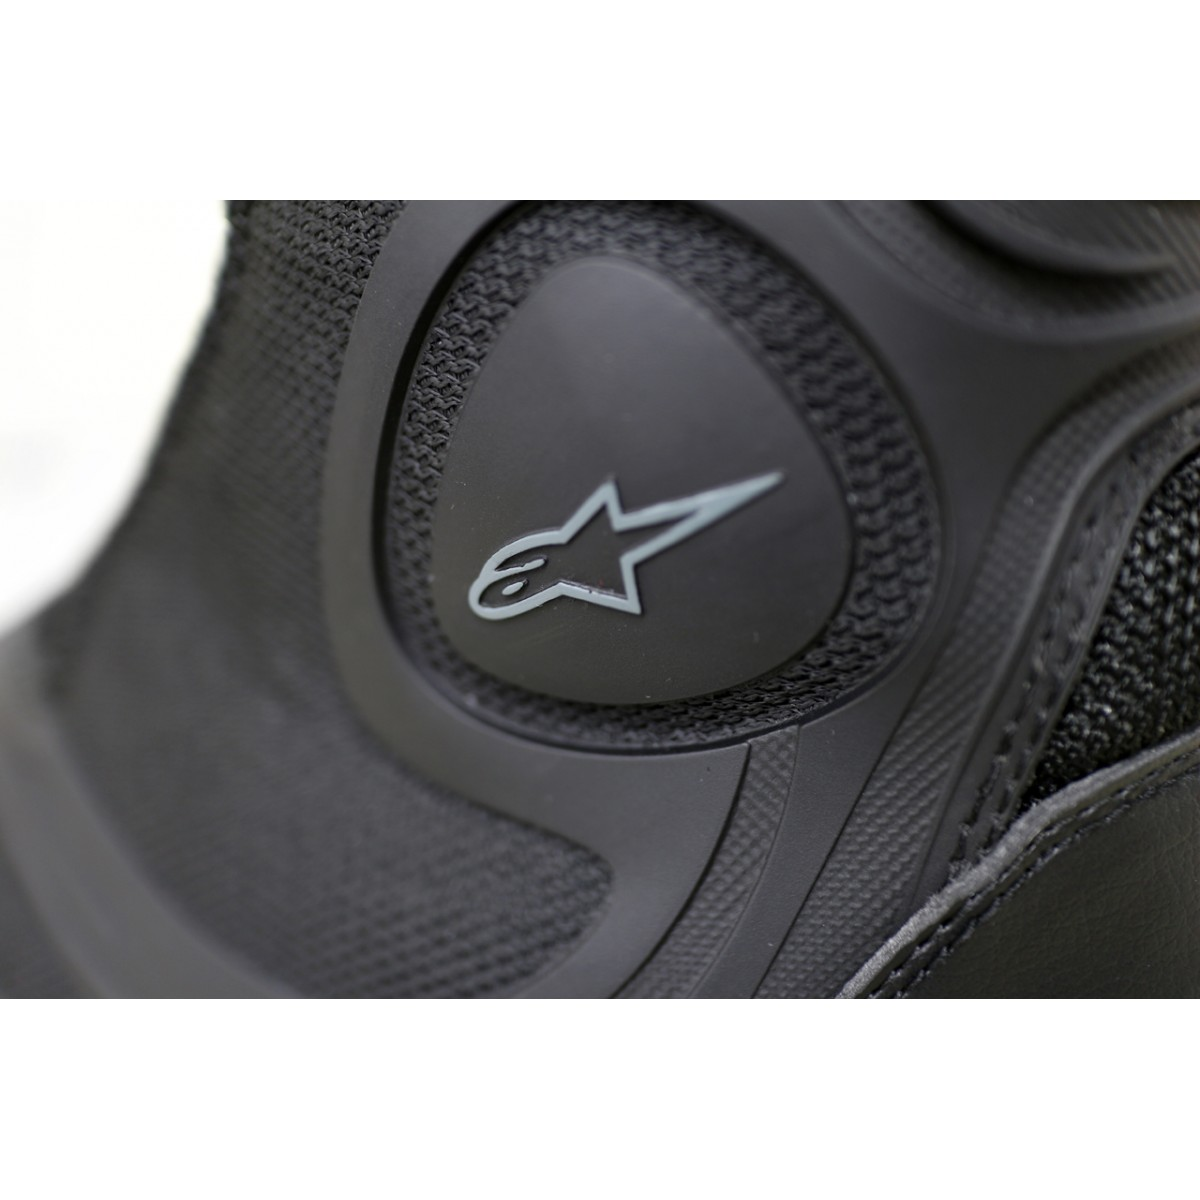 Bota Alpinestars Air Plus Gore-Tex® XCR (Impermeável)  - Super Bike - Loja Oficial Alpinestars